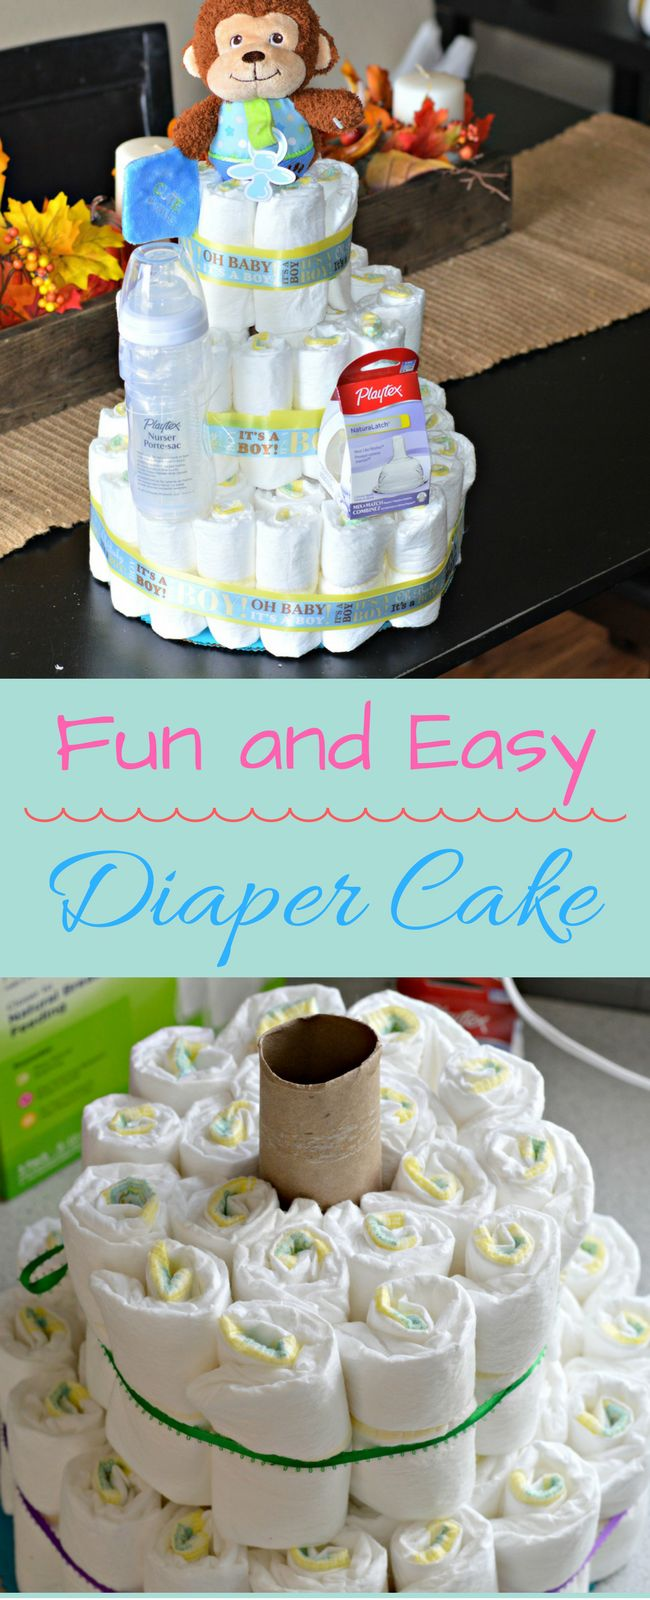 This Diaper Cake is so fun and easy to make and would make a perfect gift at your next baby shower. Check it out on the blog now! #BetterBottles #Ad